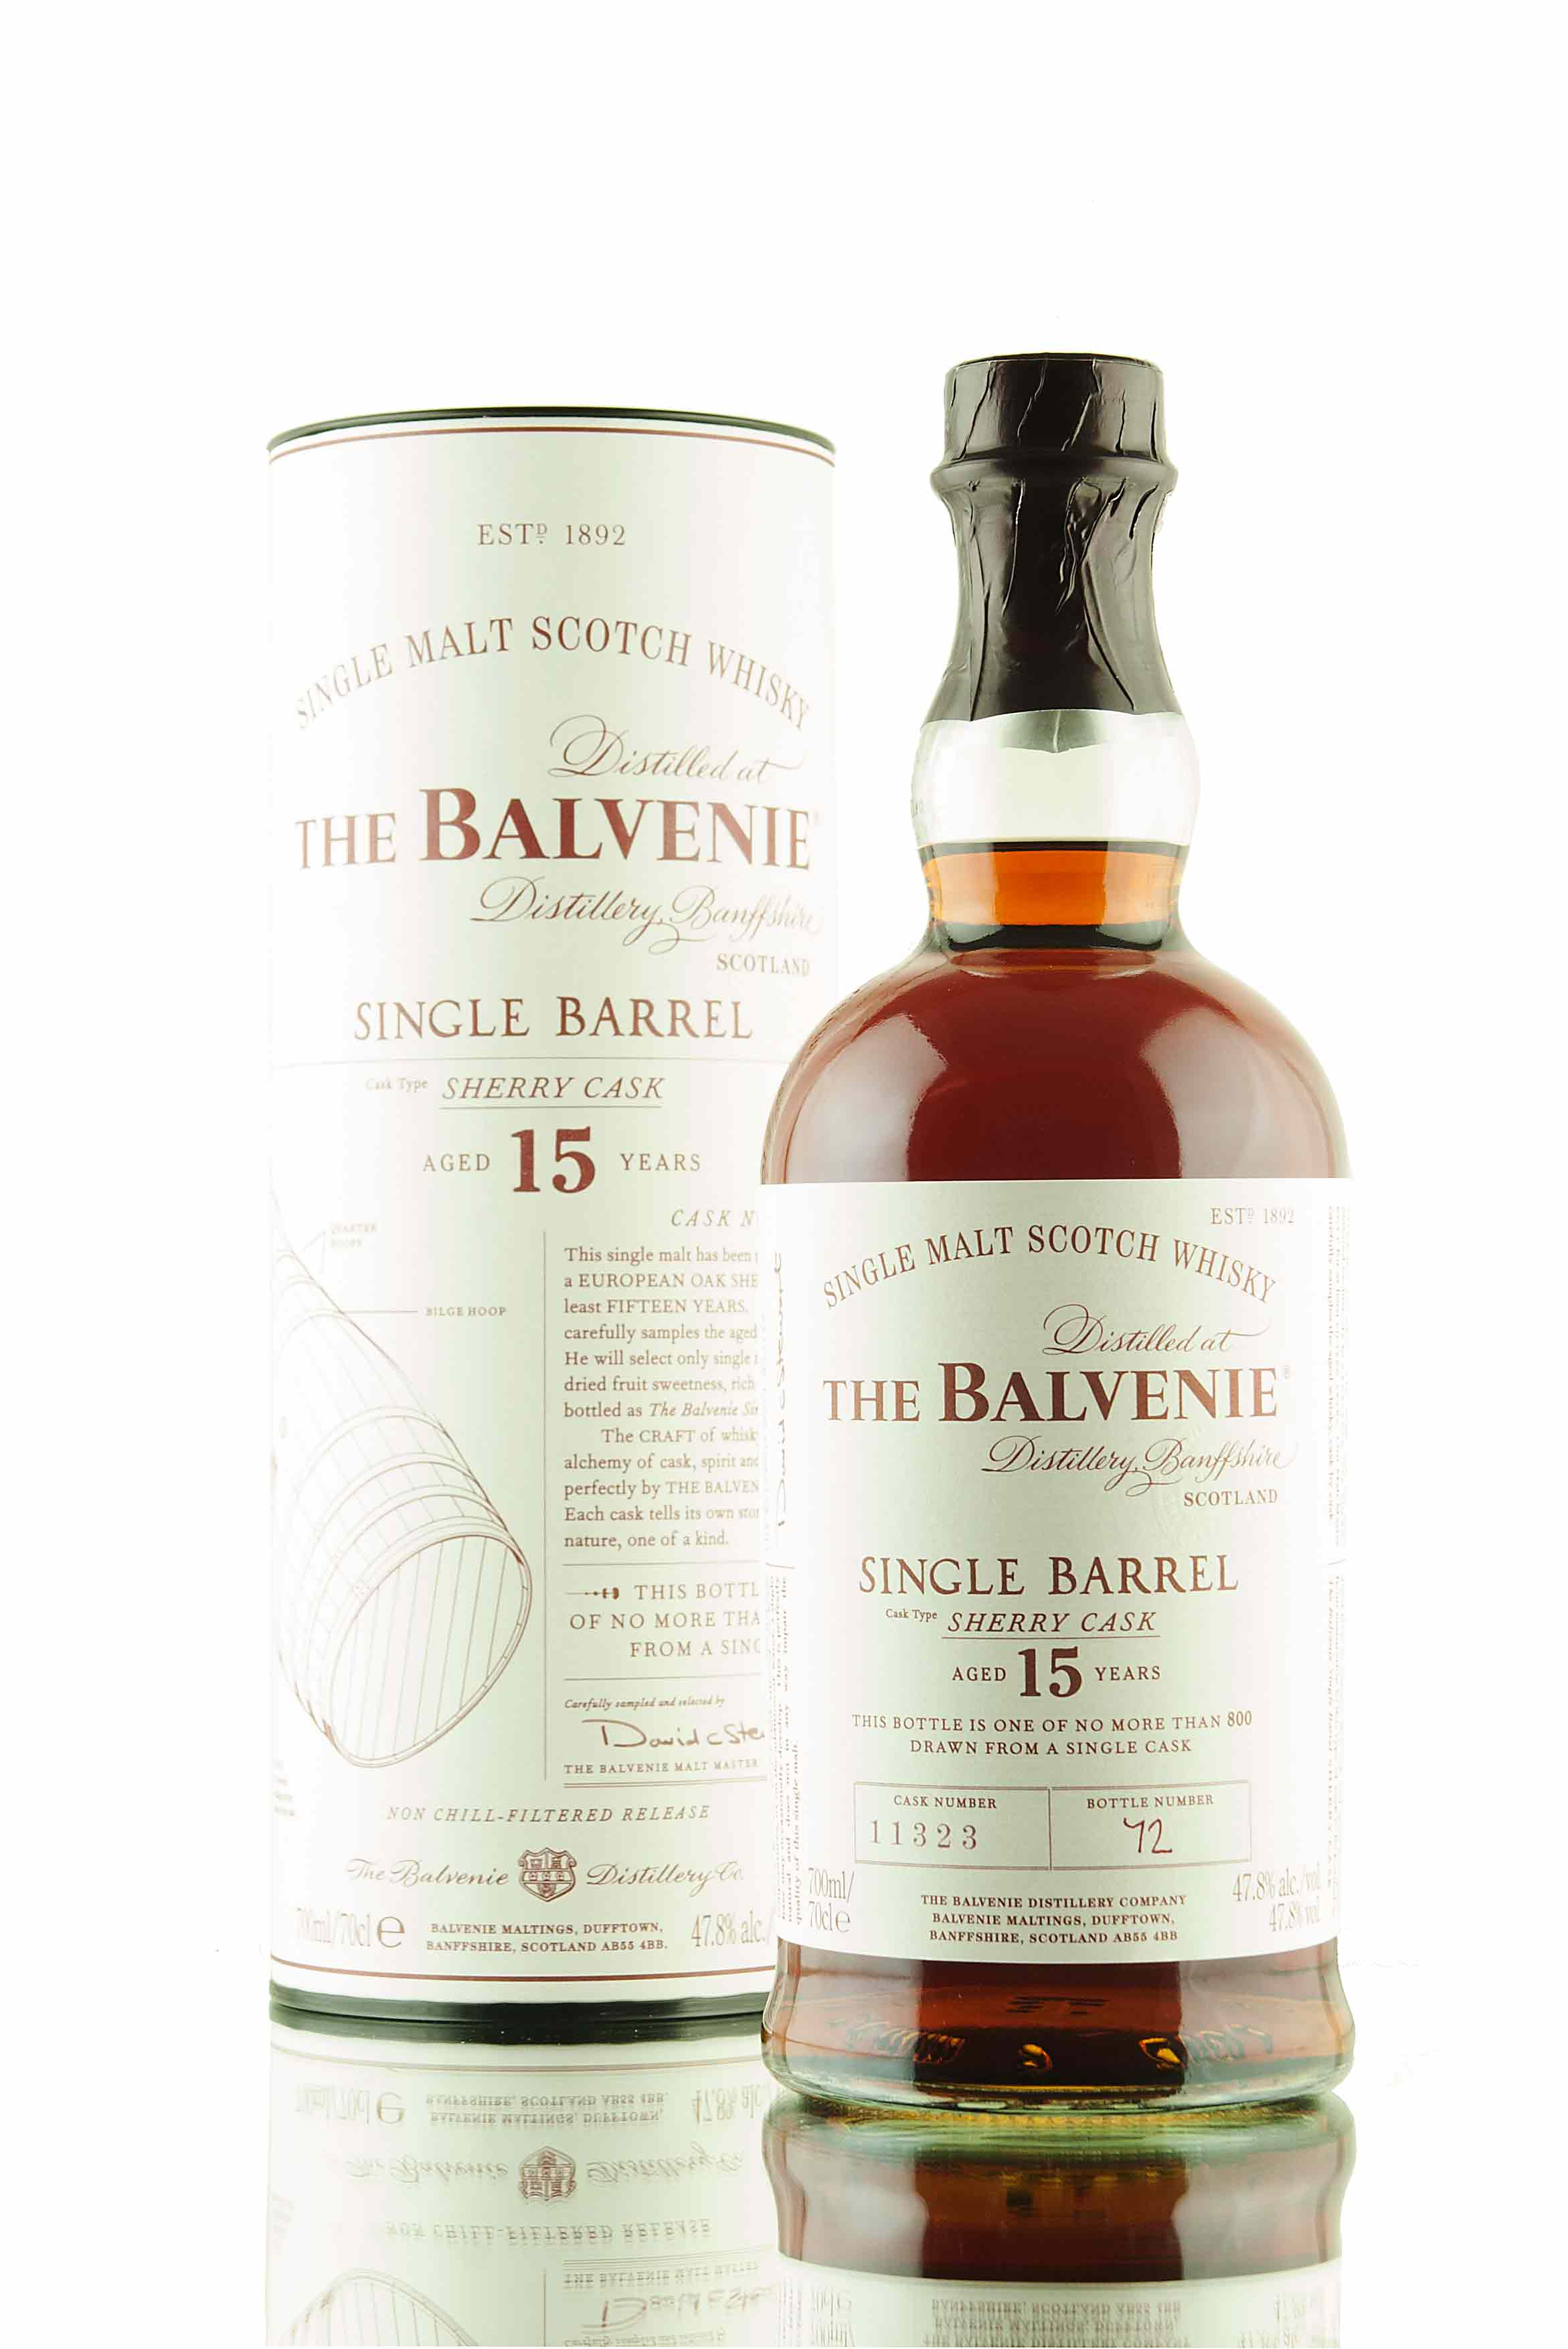 Balvenie Single Barrel 15 Year Old | Cask 11323